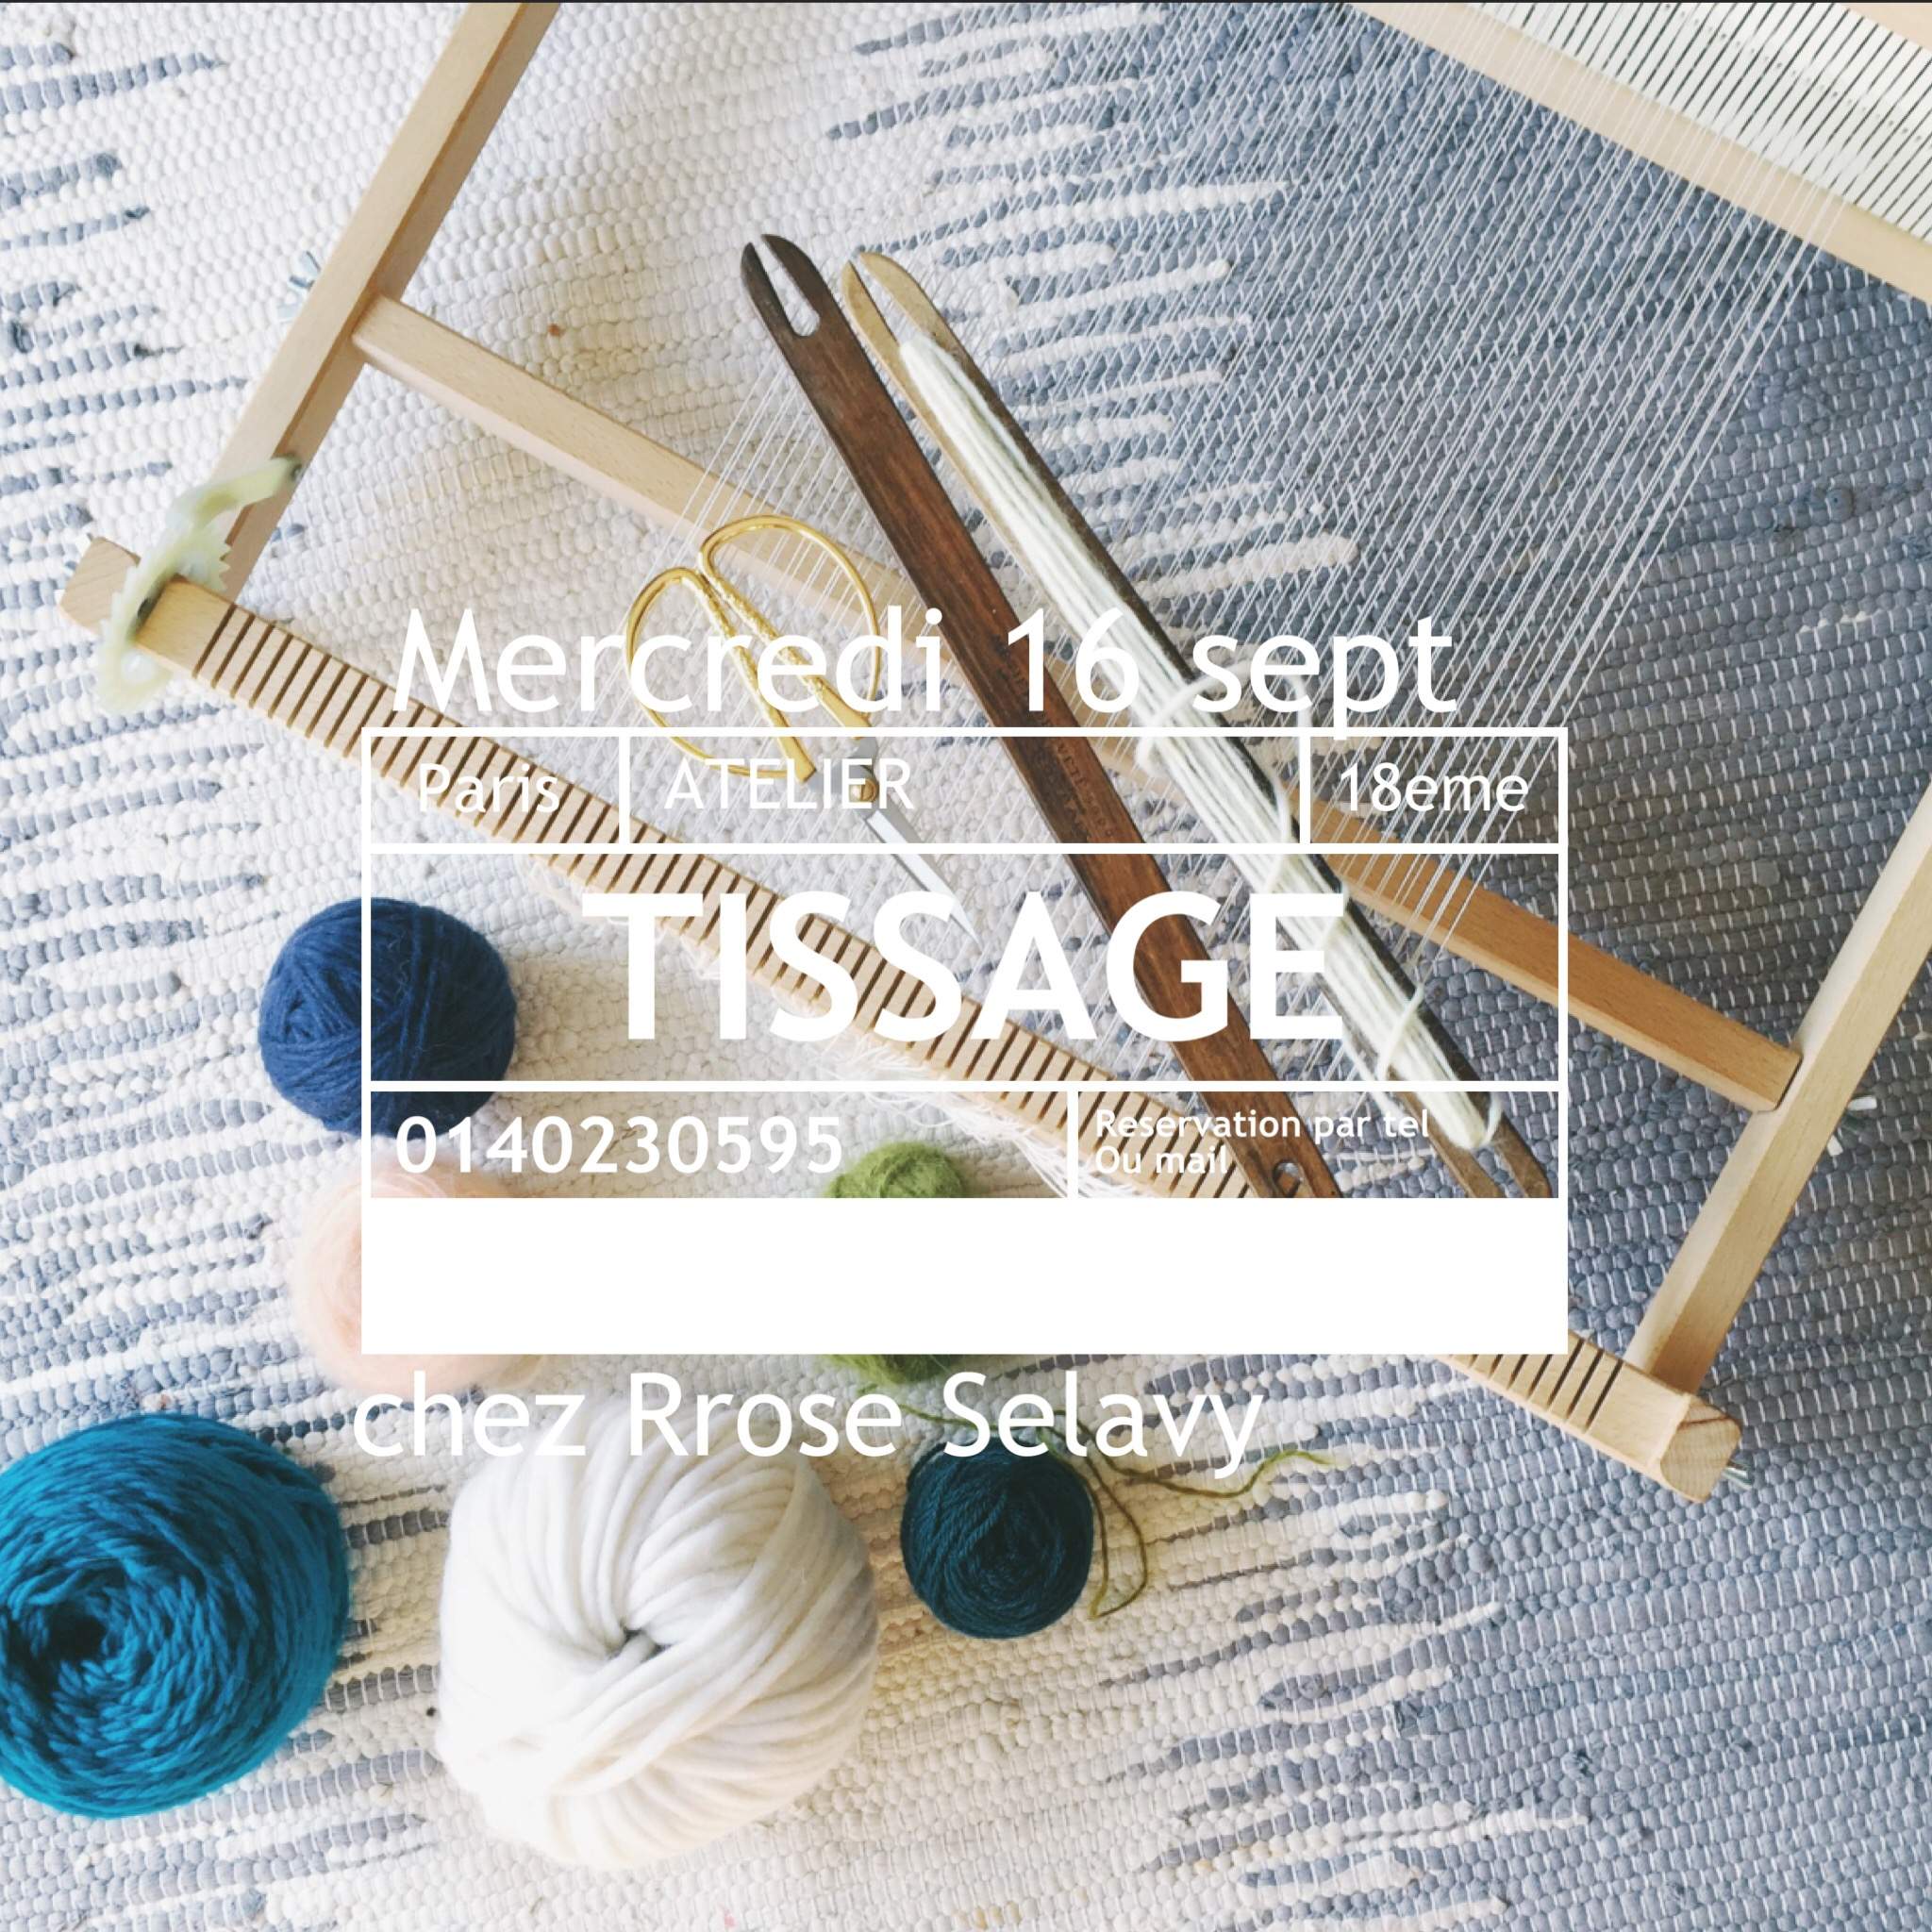 atelier tissage Paris